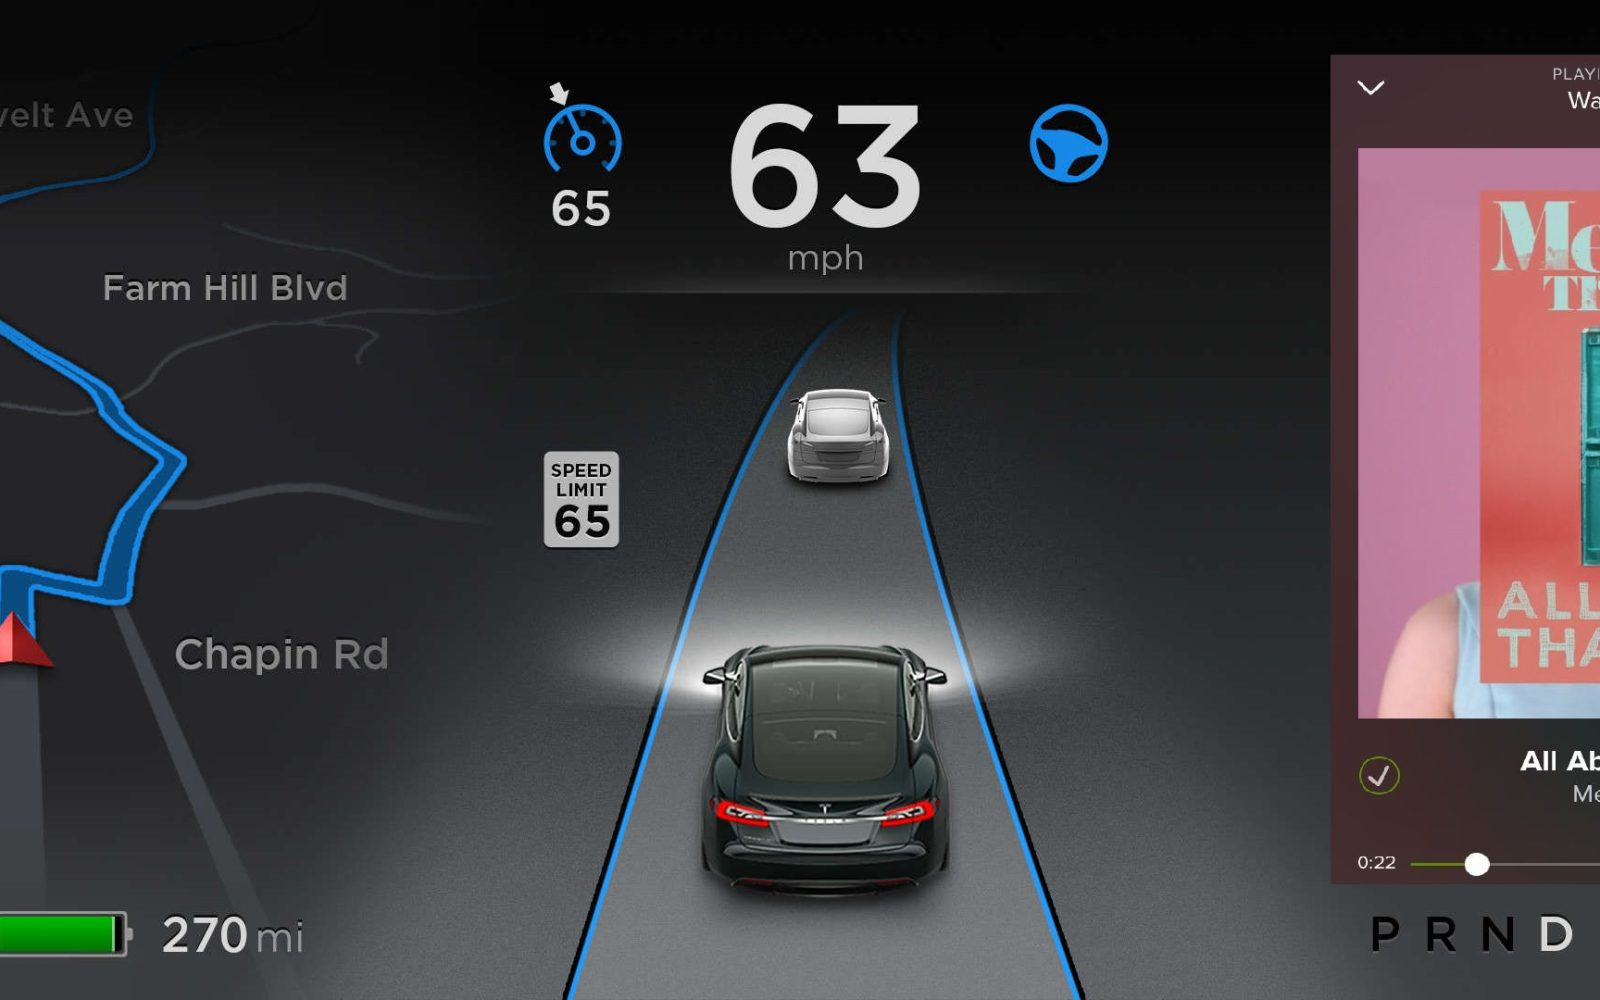 Tesla and Spotify release an app for the Model S via OTA ...